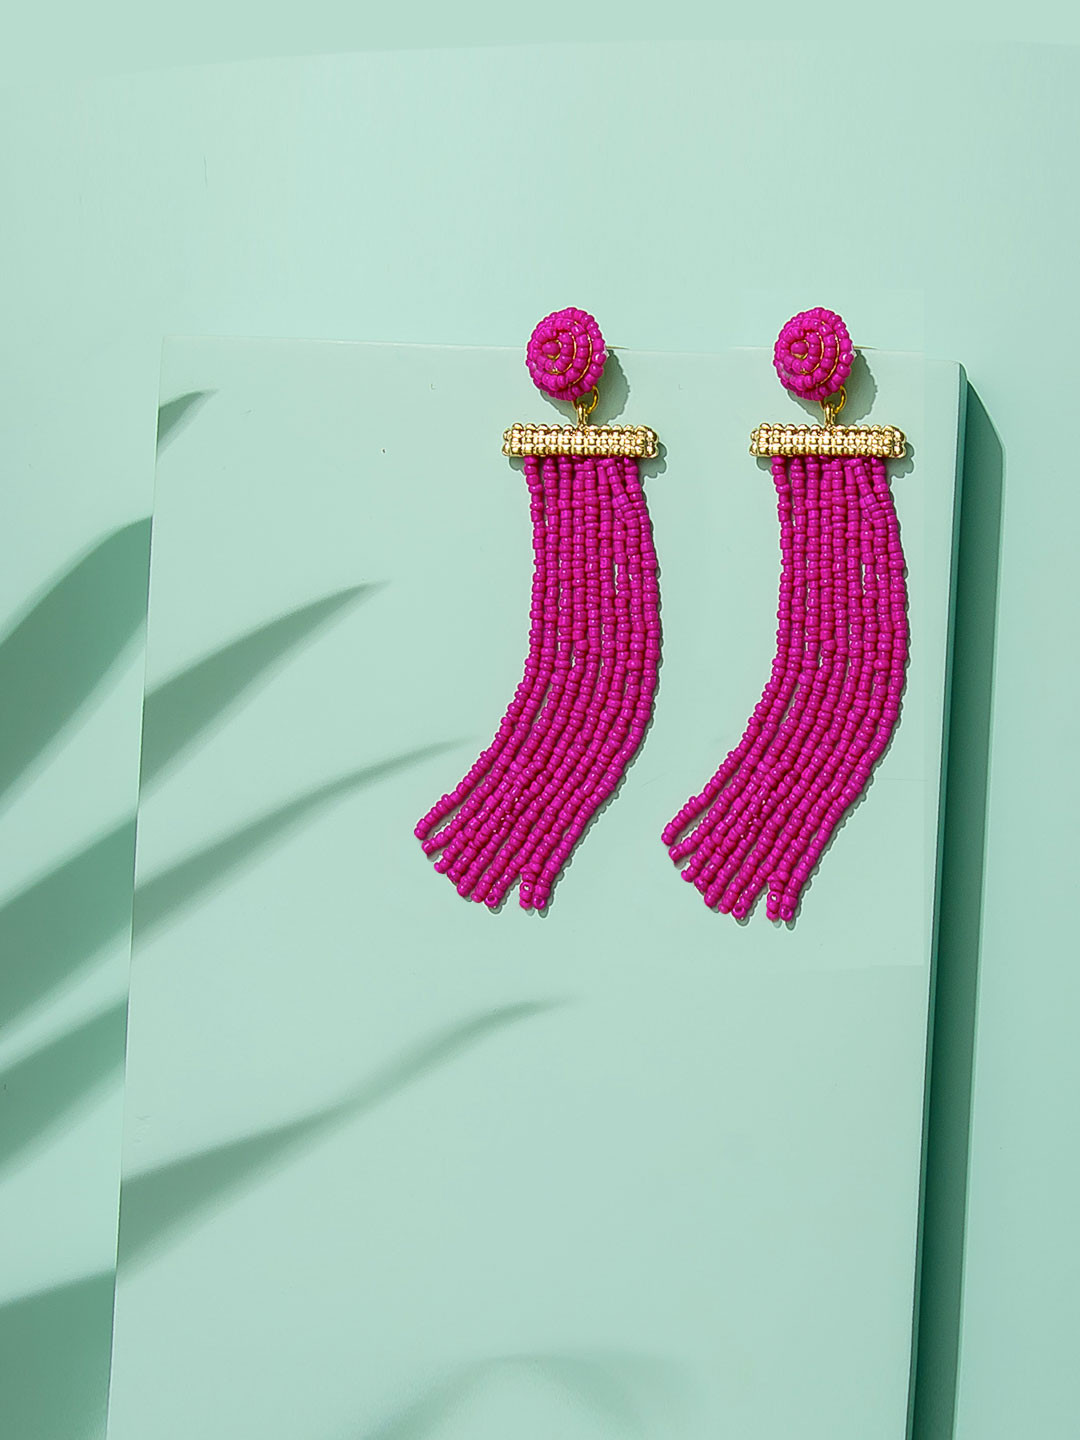 7. gifts for your bestie statement earrings